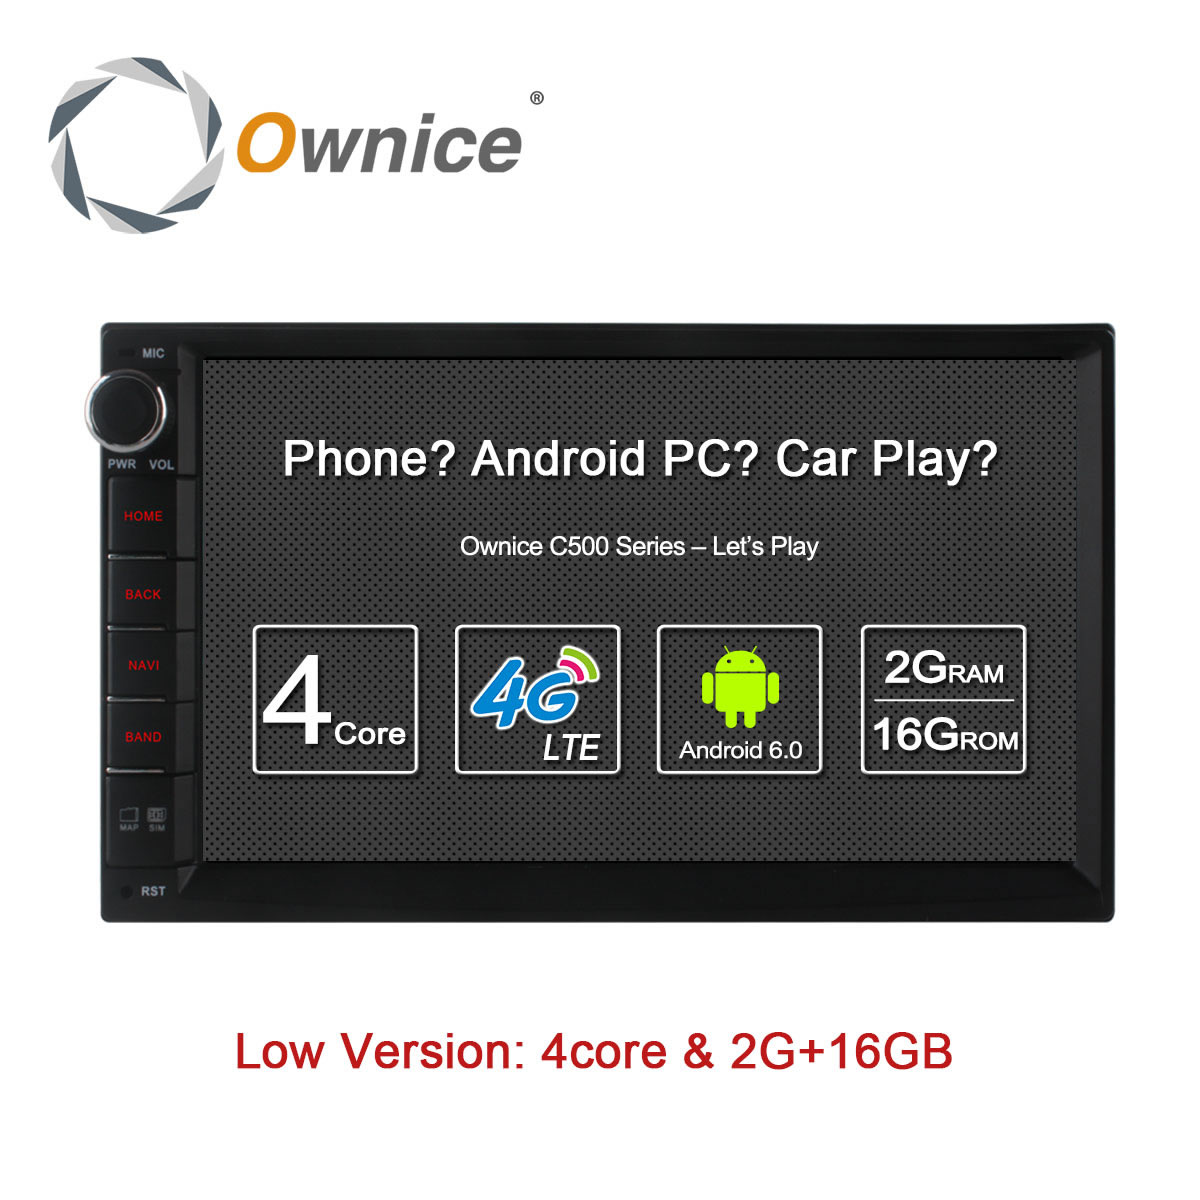 Ownice C500 Octa 8 Core Android 6 0 2G RAM 32GB ROM Support 4G LTE SIM ownice c500 octa 8 core android 6 0 2g ram 32gb rom support 4g lte  at gsmx.co